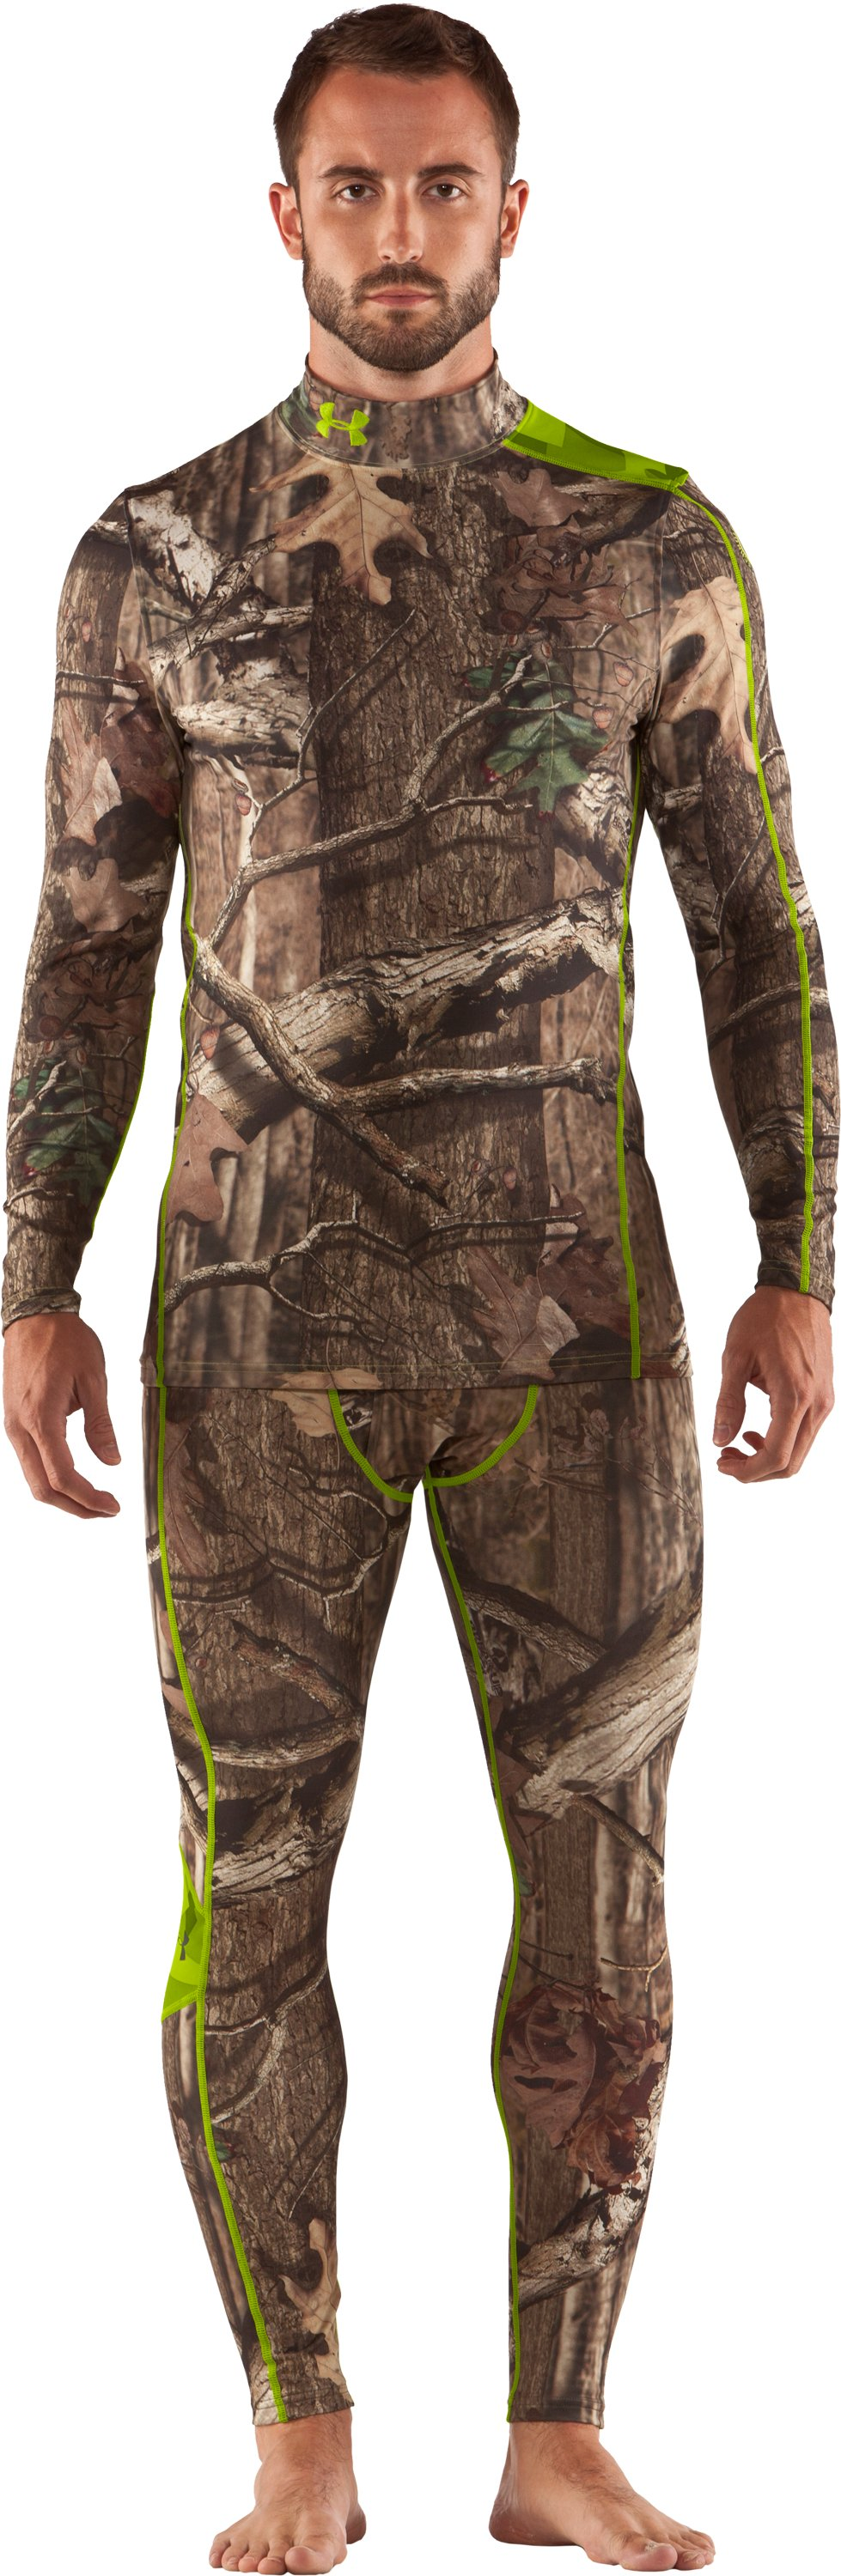 Men's ColdGear® Evo Scent Control Leggings, Mossy Oak Break-Up Infinity